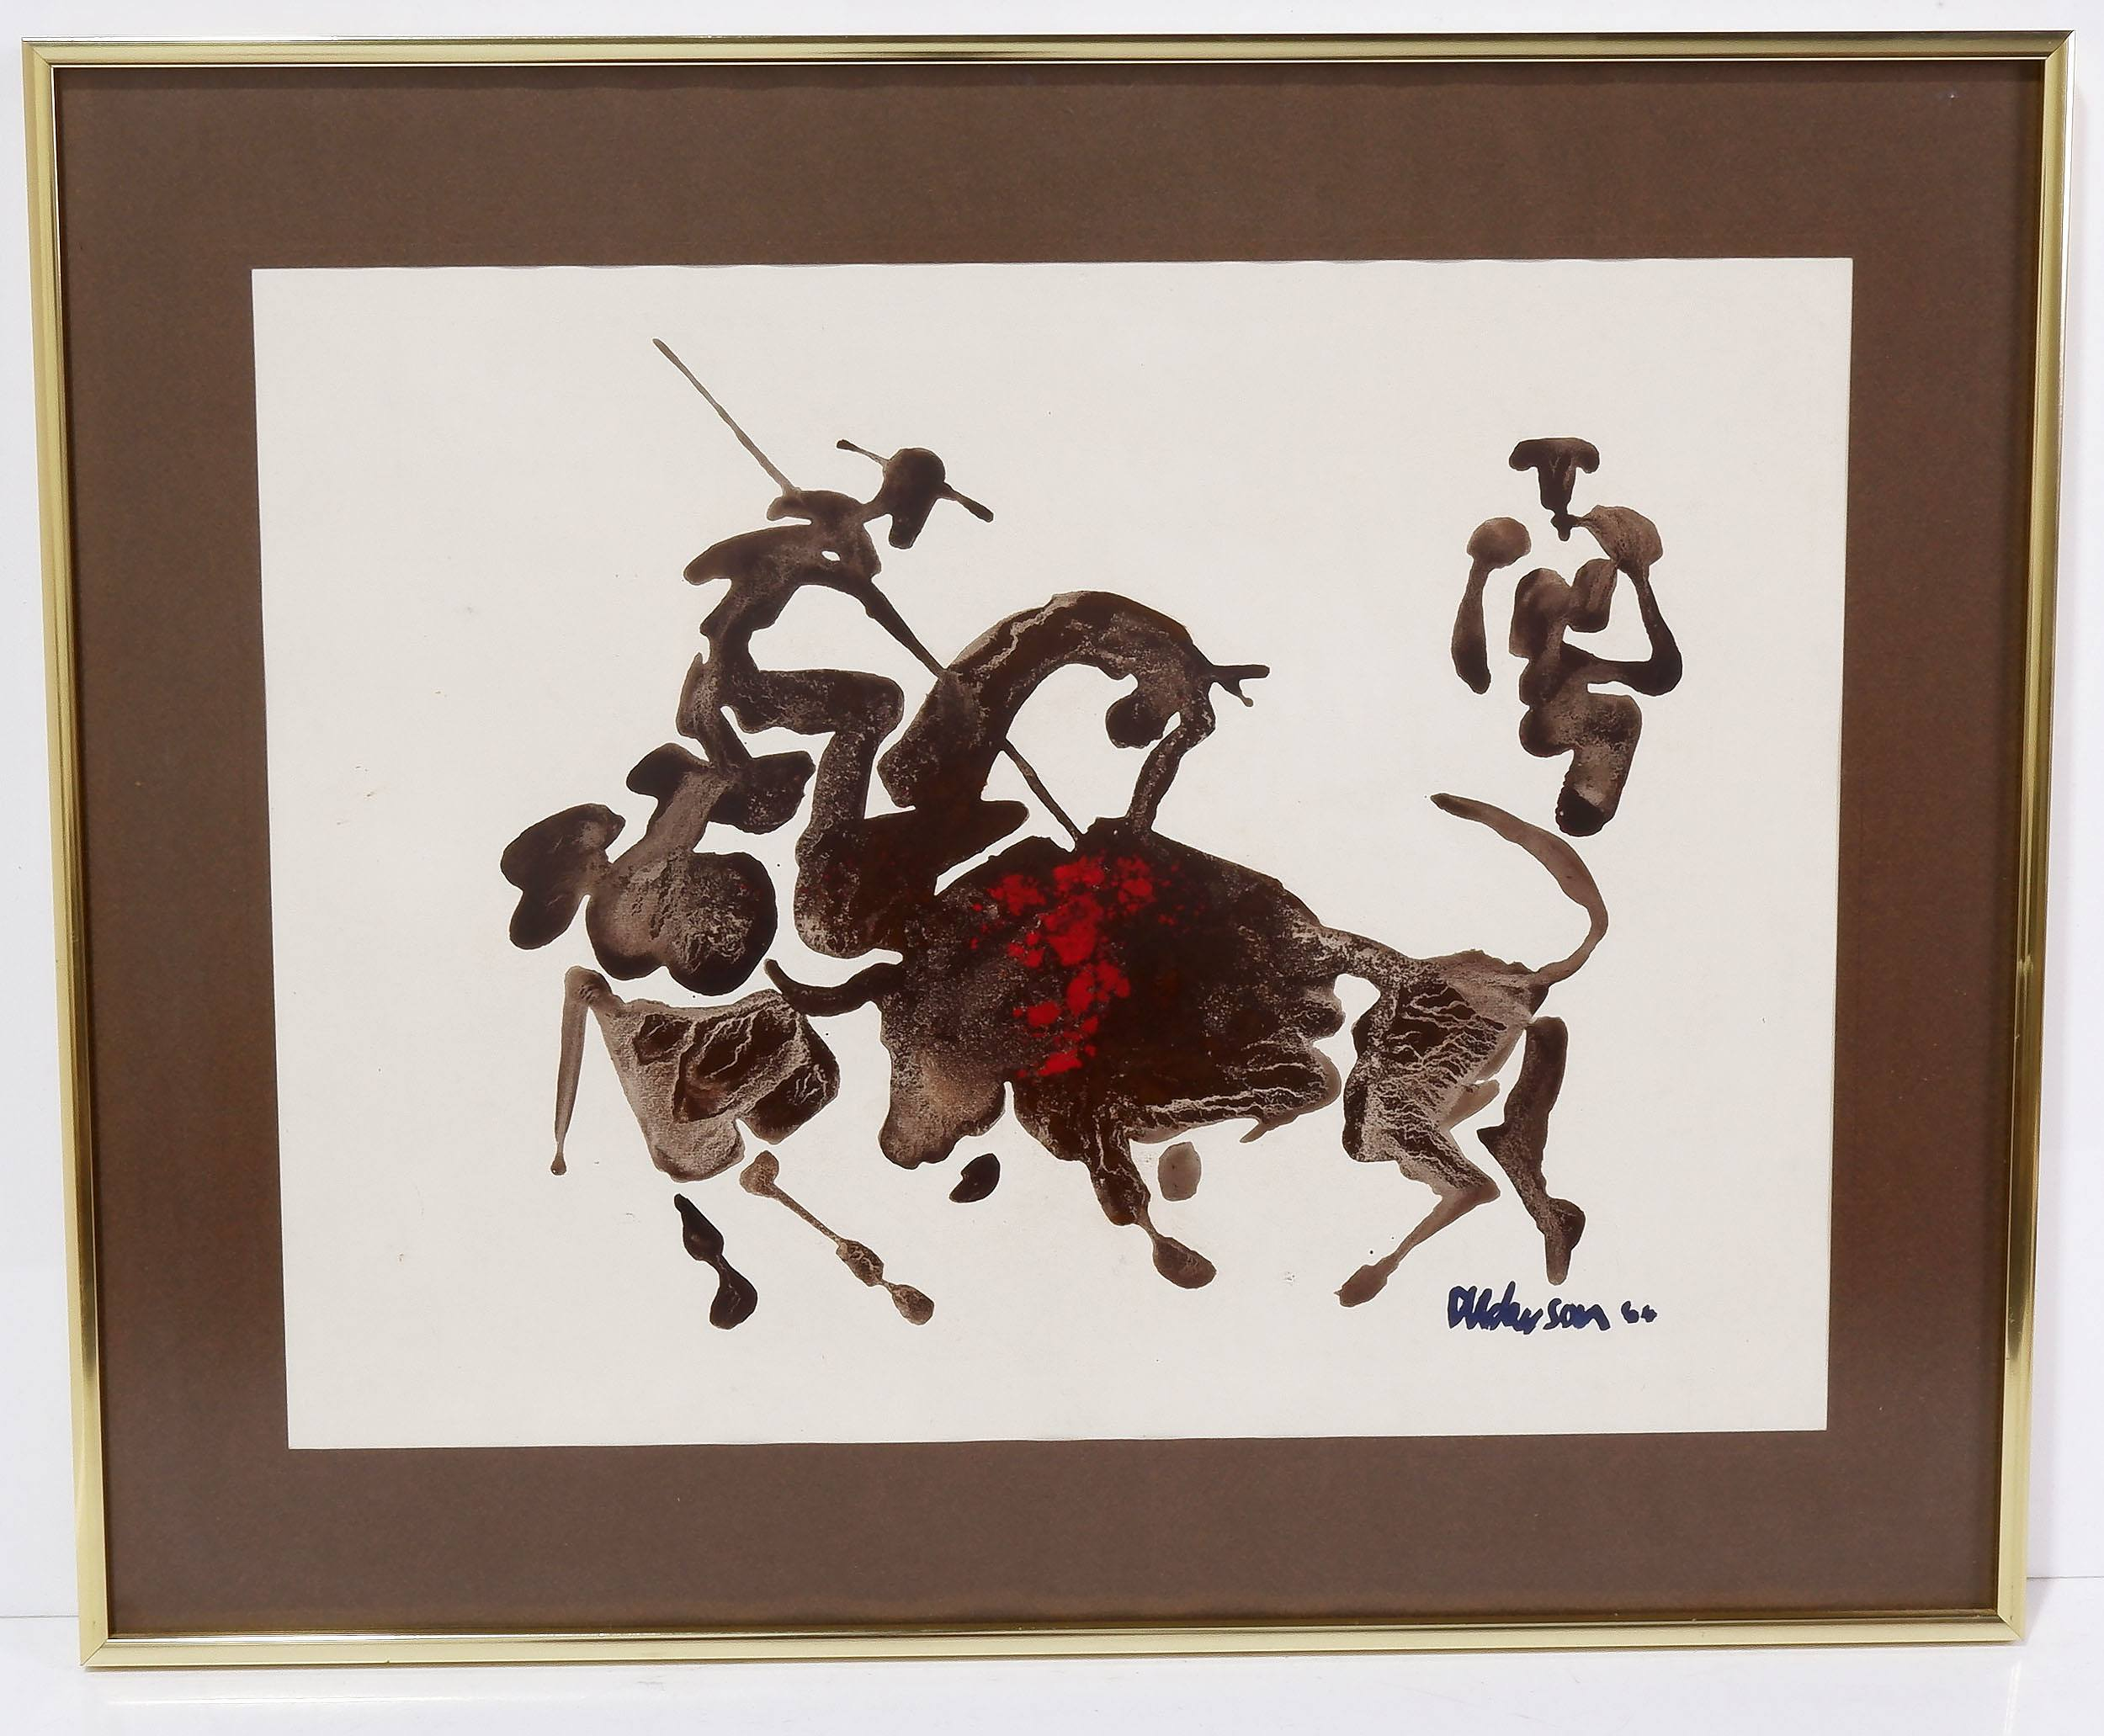 'Ink and Blotter Painting of a Bull Fight After Picasso'